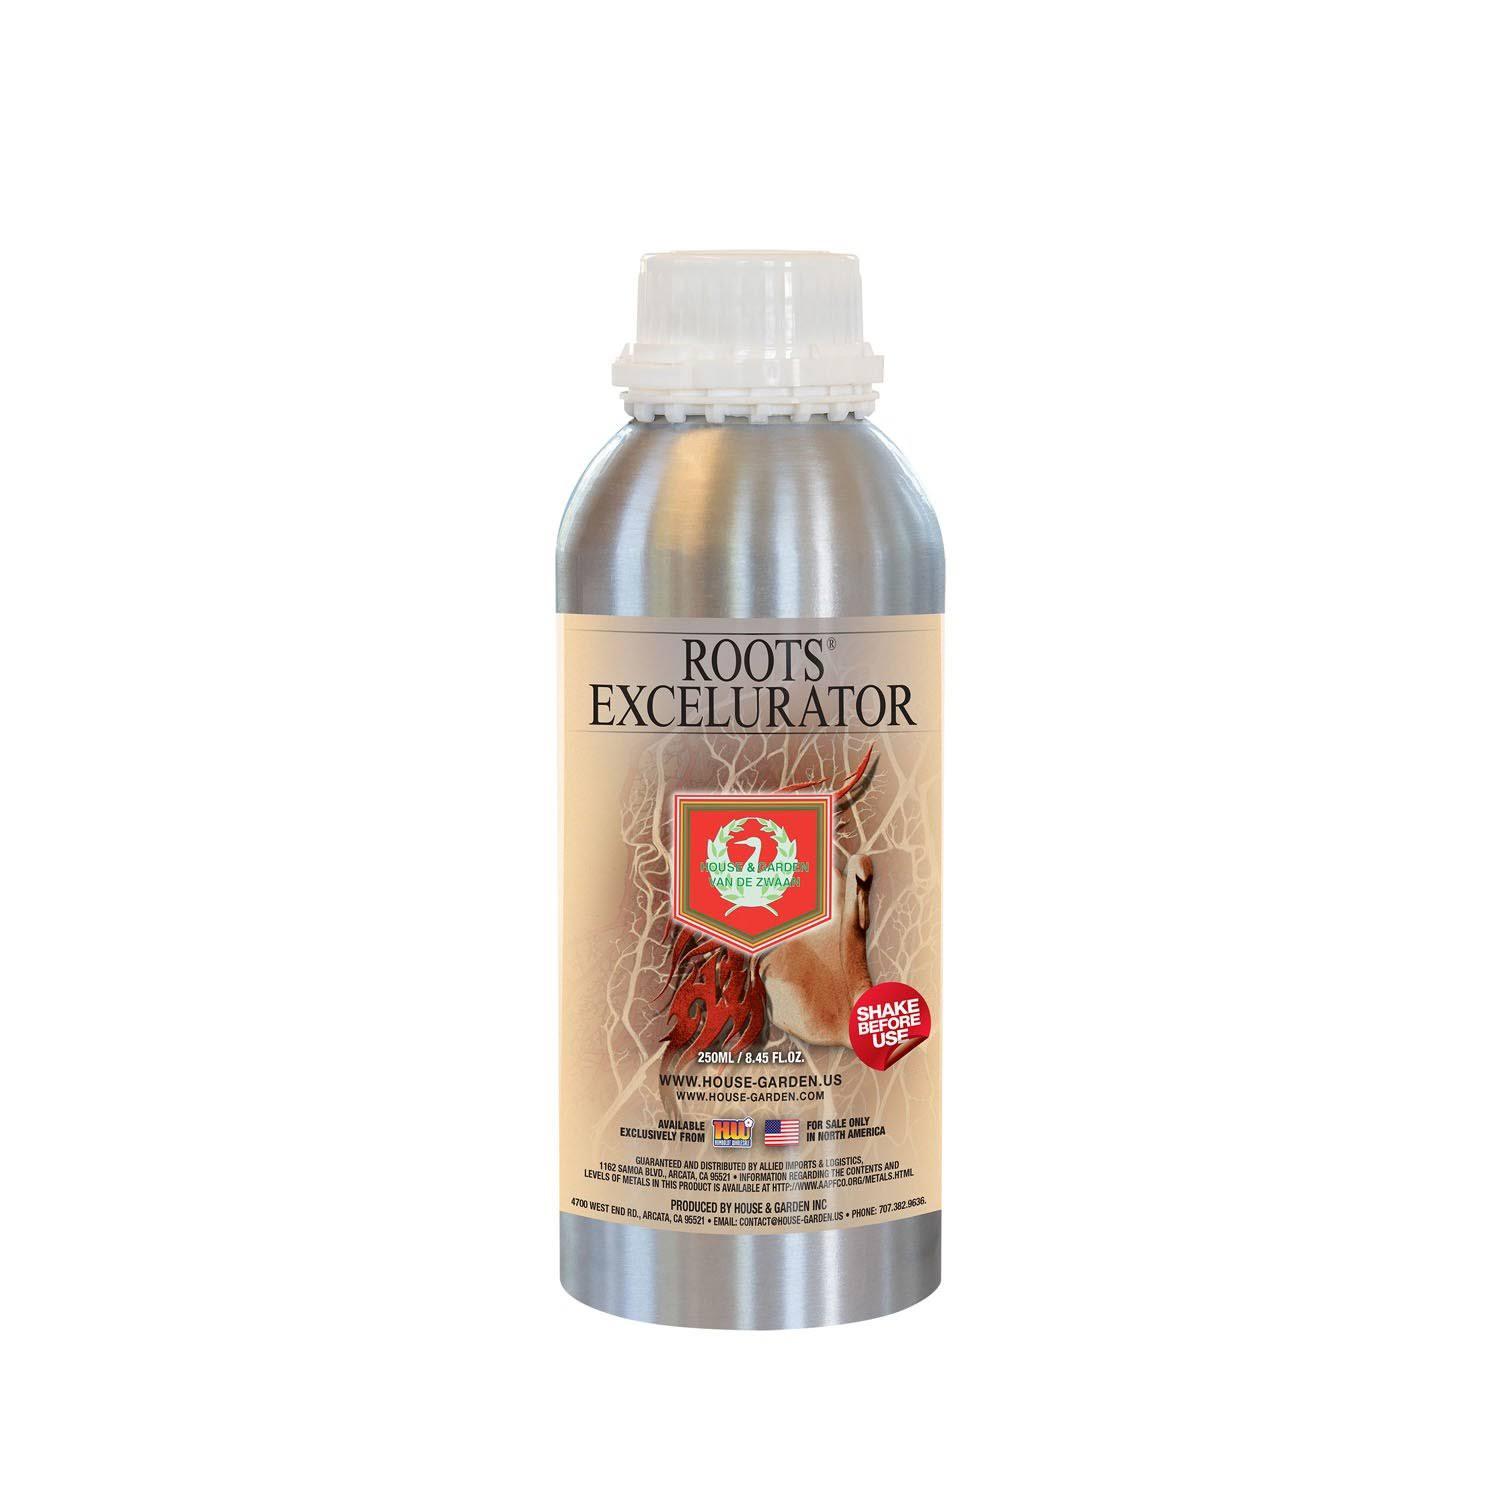 House & Garden Roots Excelurator - Silver, 250ml